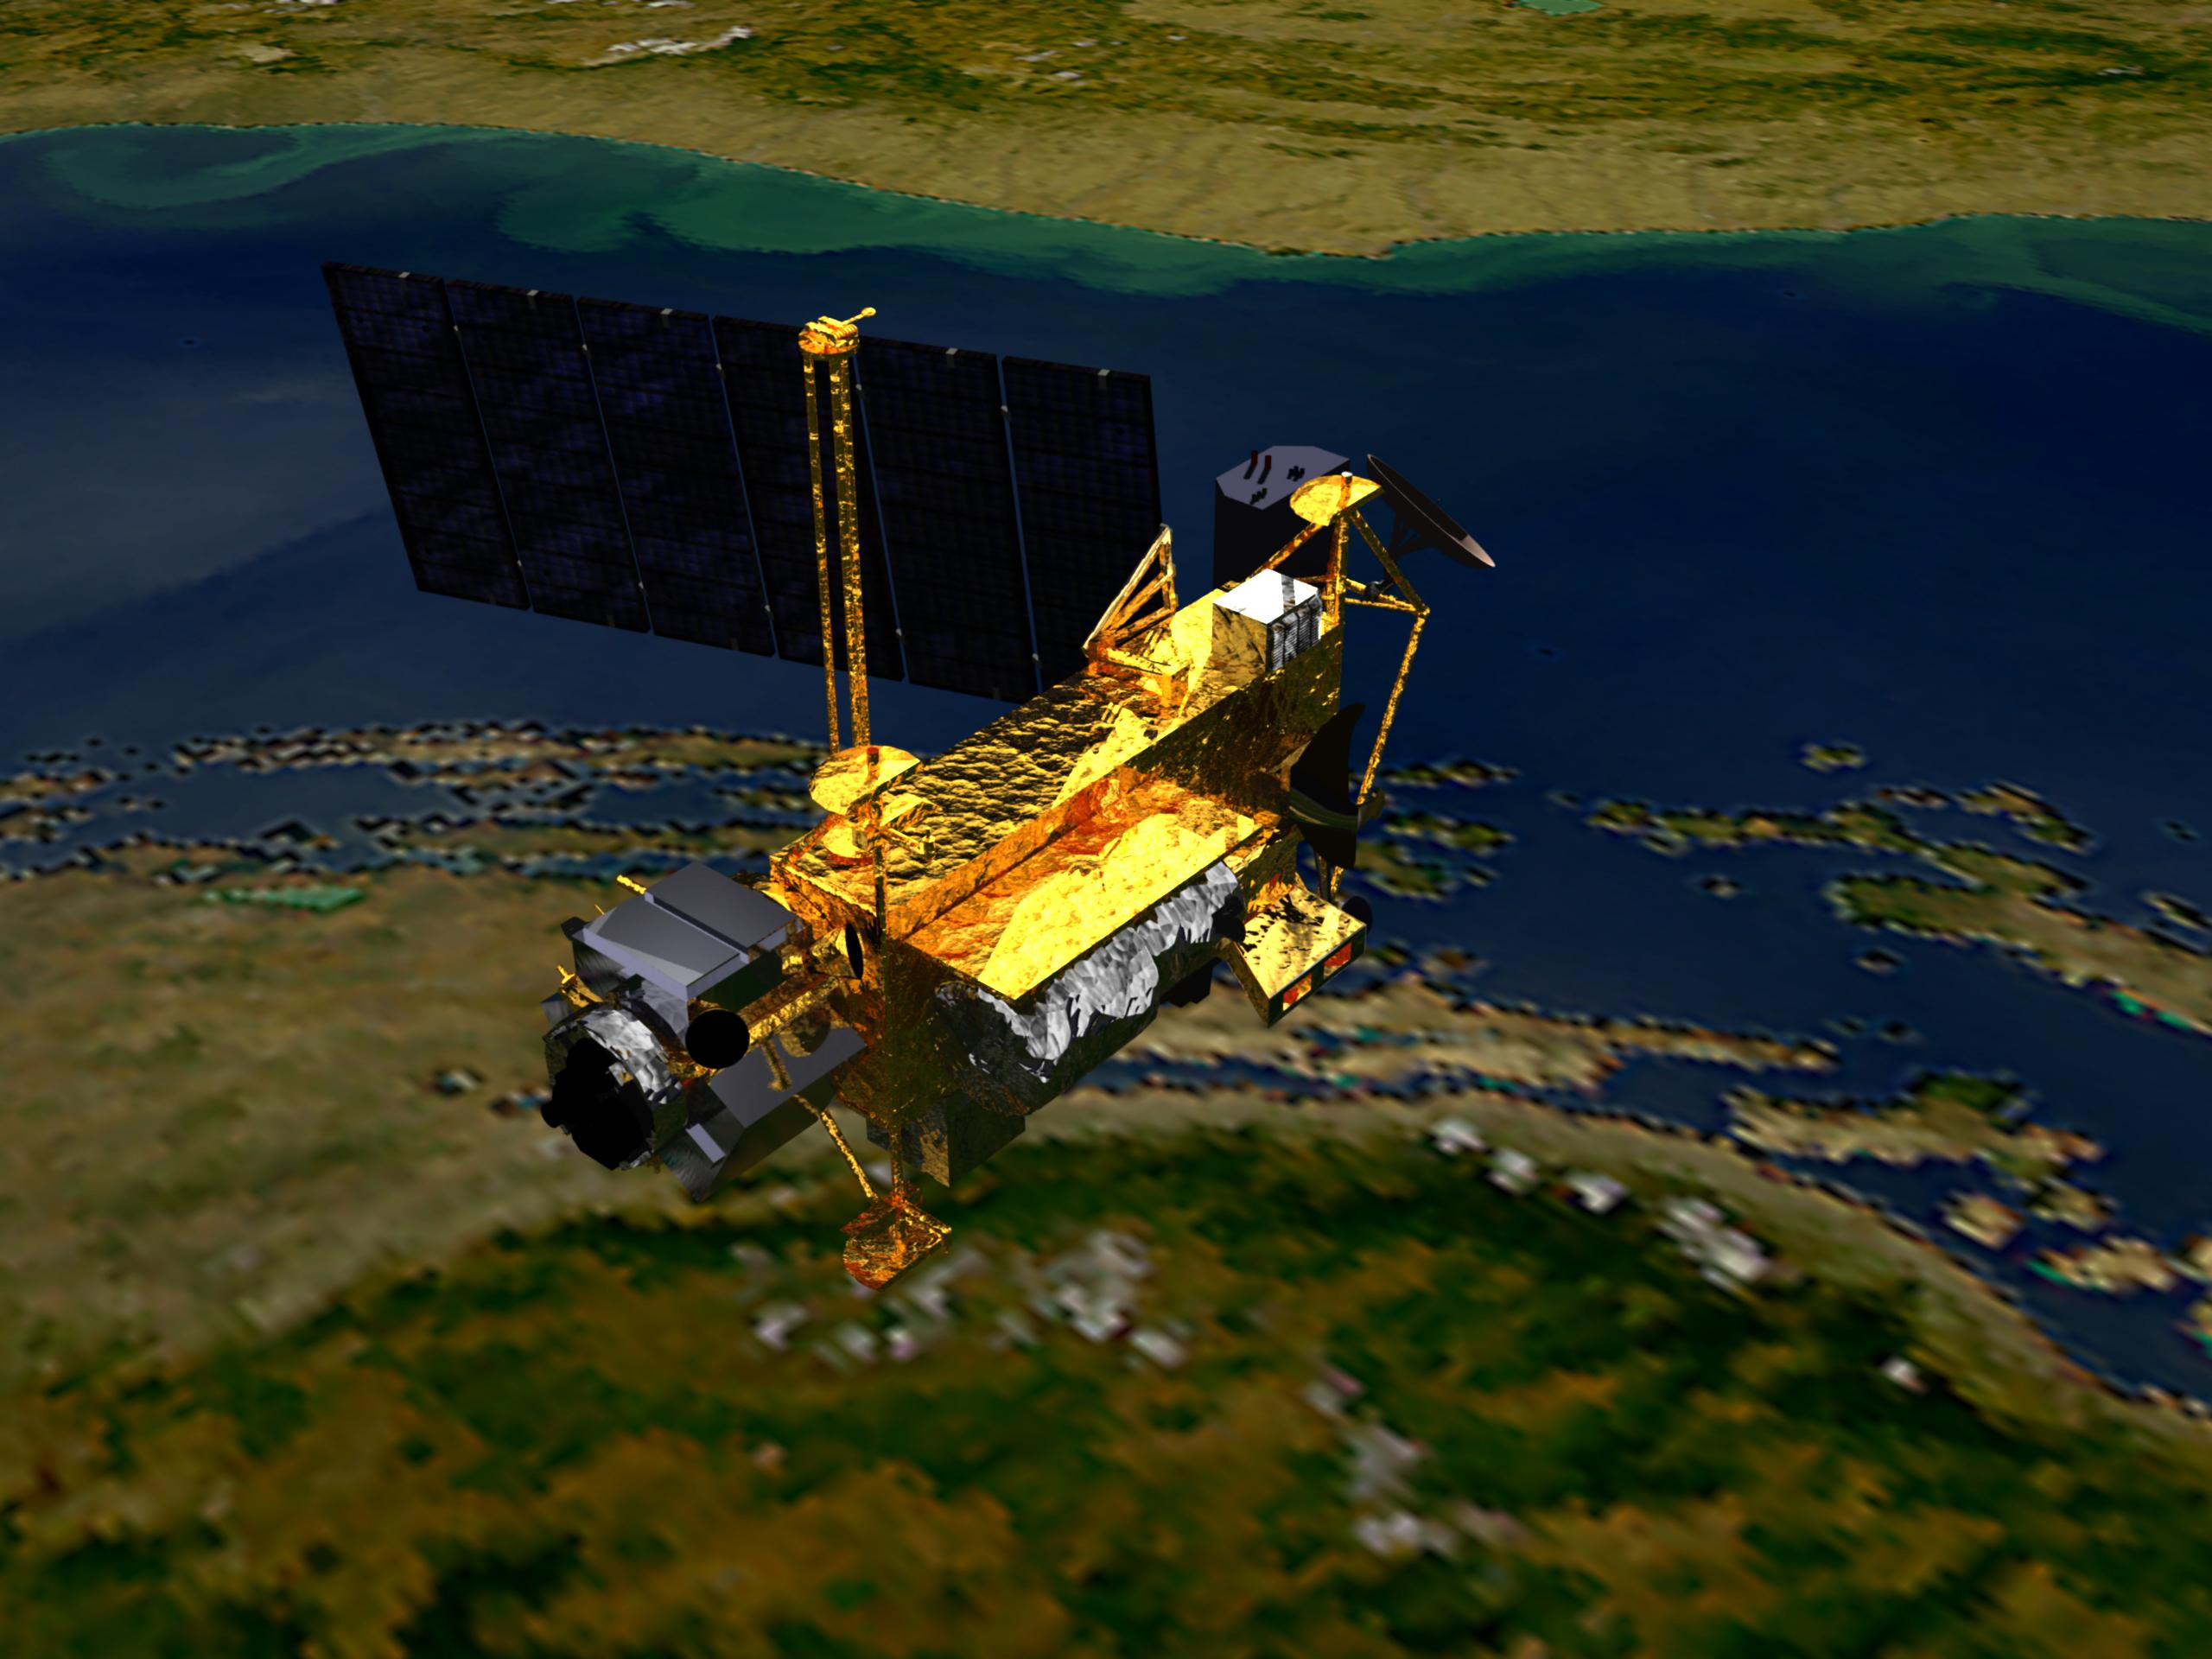 UARS Satellite in Orbit